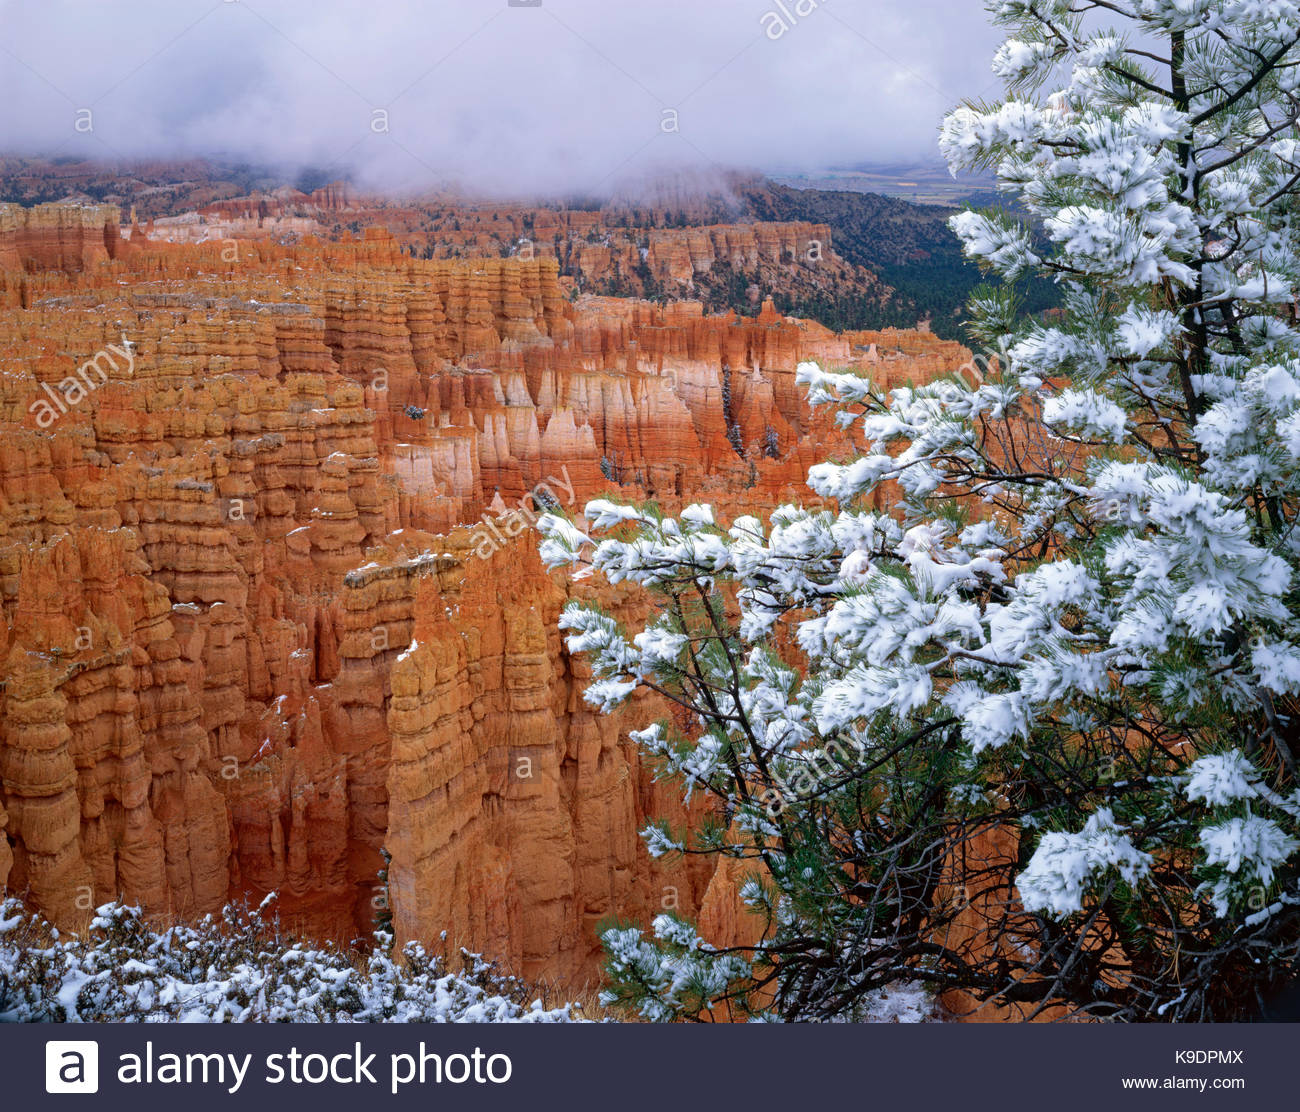 Storm over Silent City, Bryce Canyon National Park, Utah - Stock Image